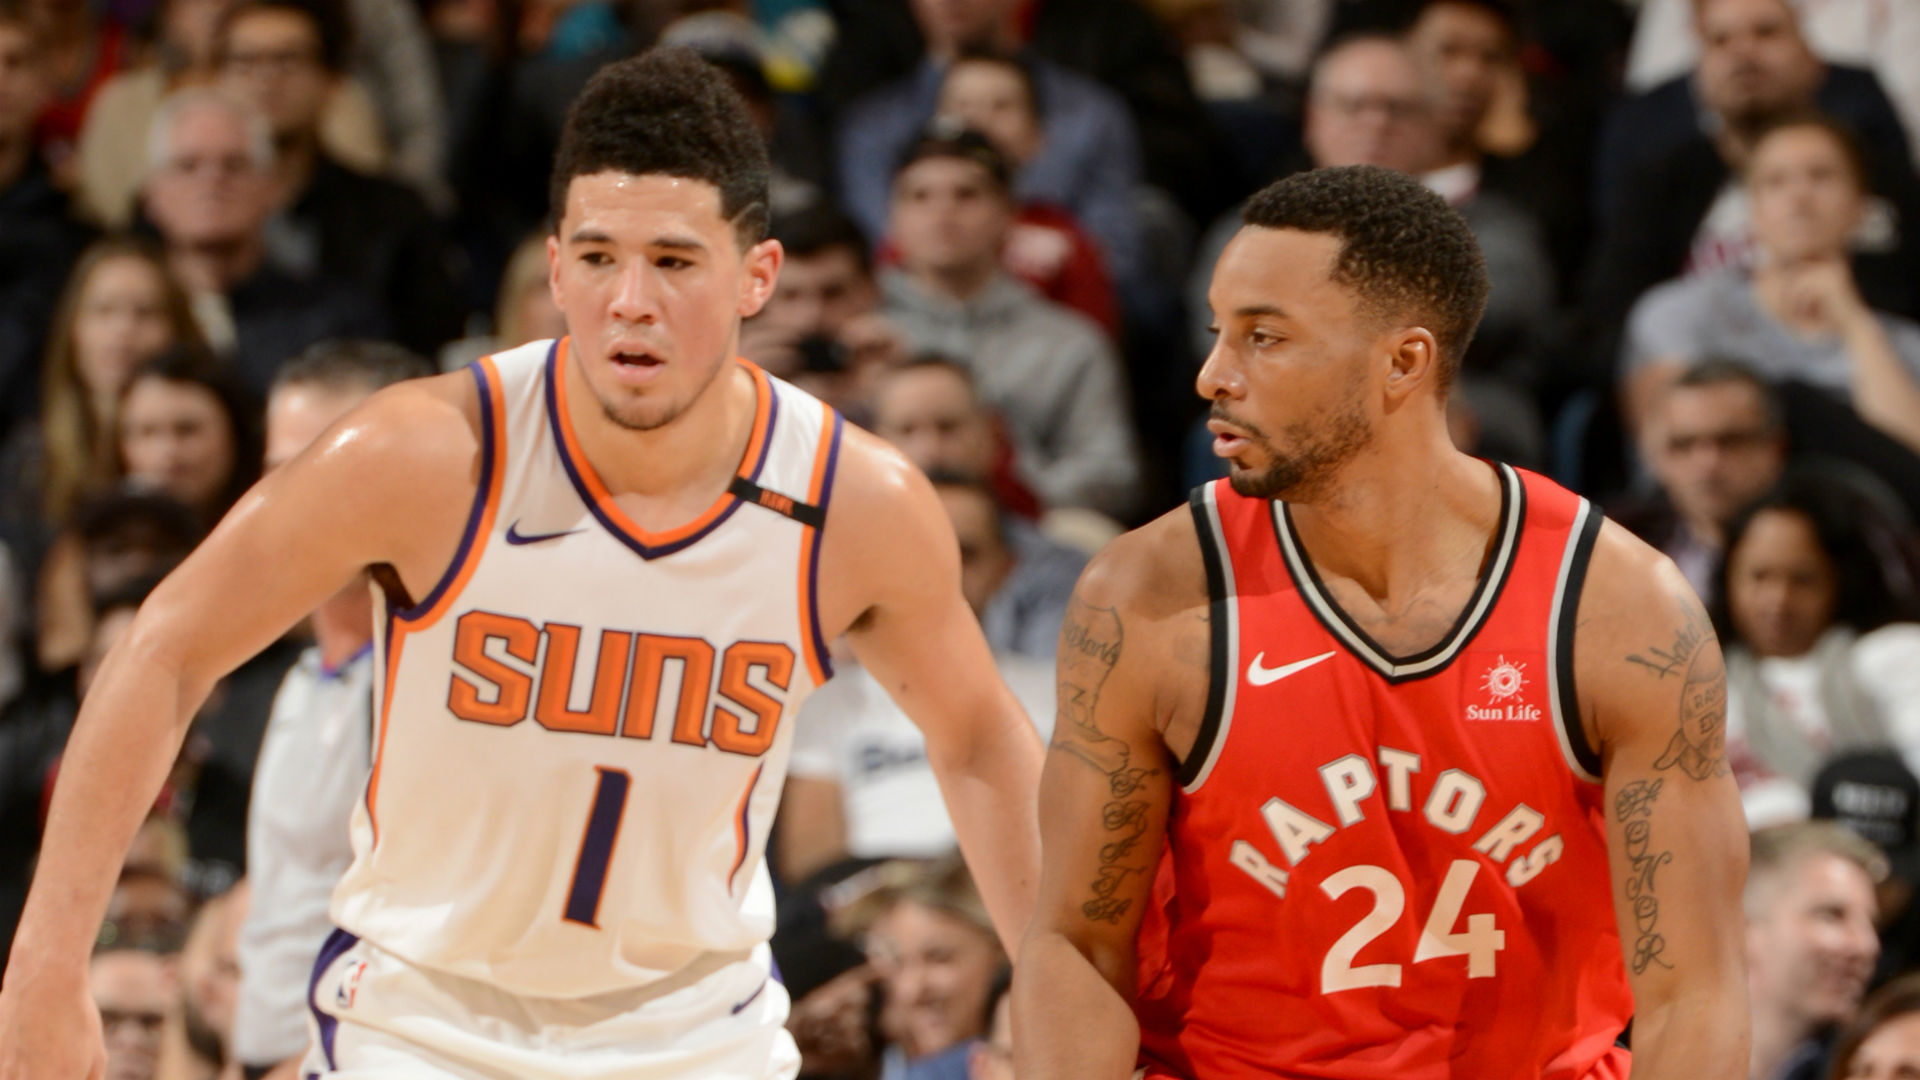 Raptors News: Toronto Raptors Vs. Phoenix Suns: Game Preview, Live